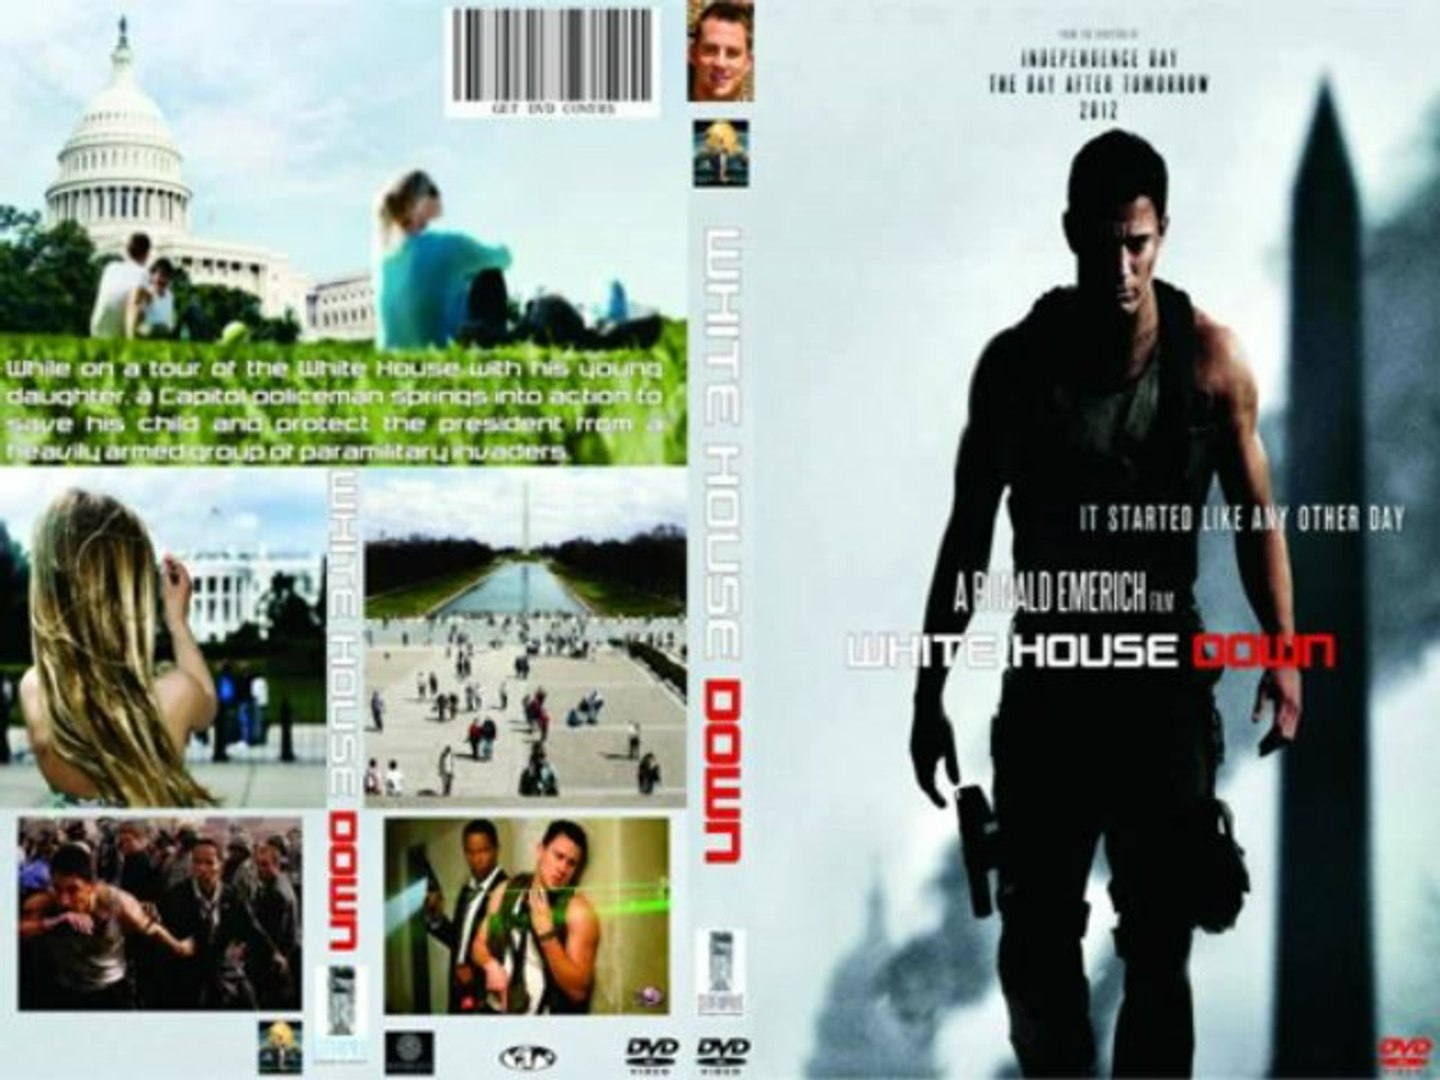 White House Down Complete Movie Online **** FREE Movie HDHQ [streaming movie music]